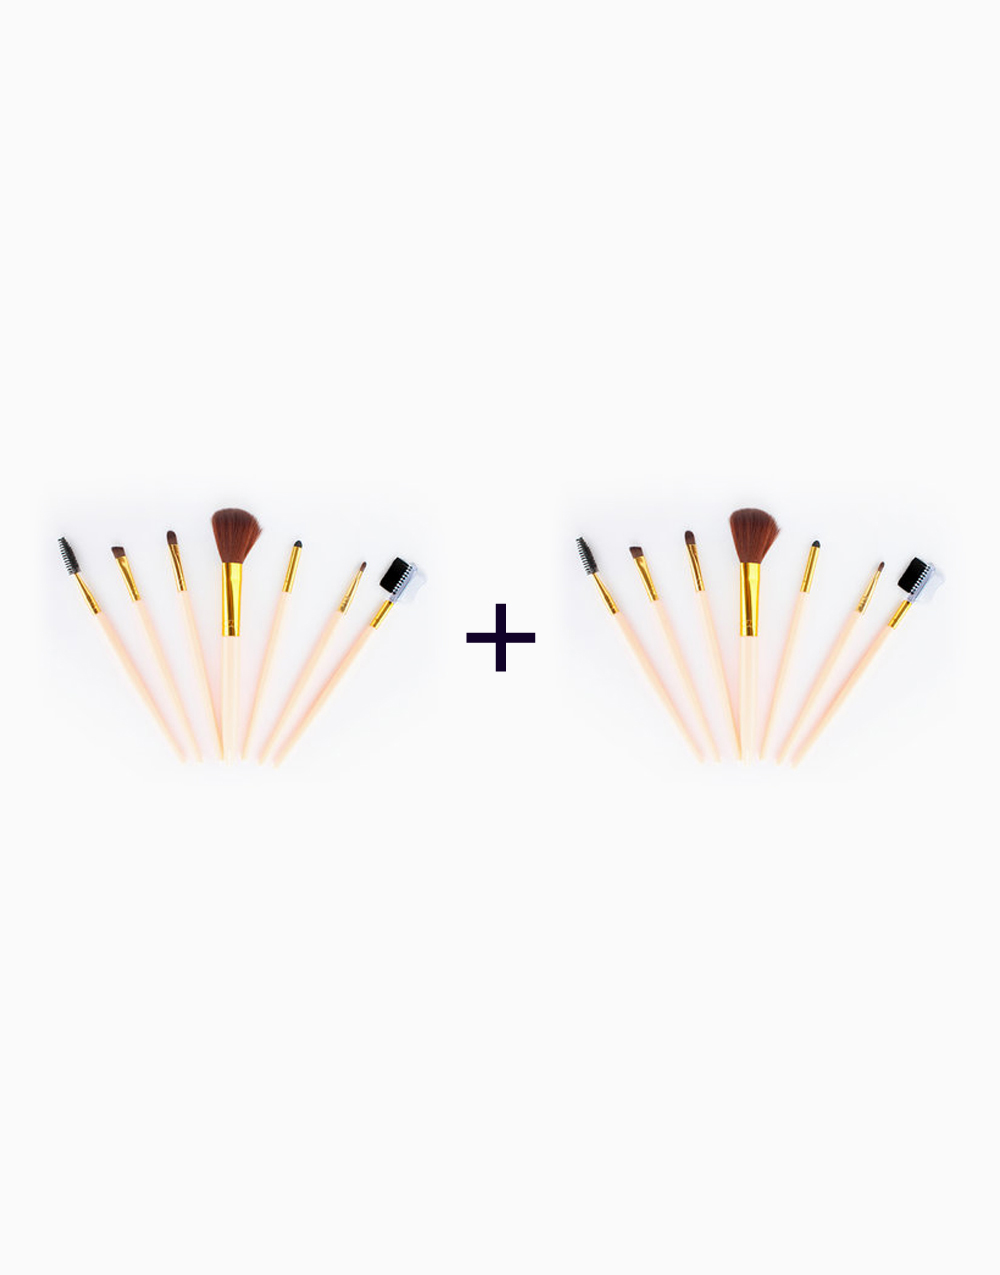 7-Piece Travel Brush Set (Buy 1, Take1) by PRO STUDIO Beauty Exclusives | Peach